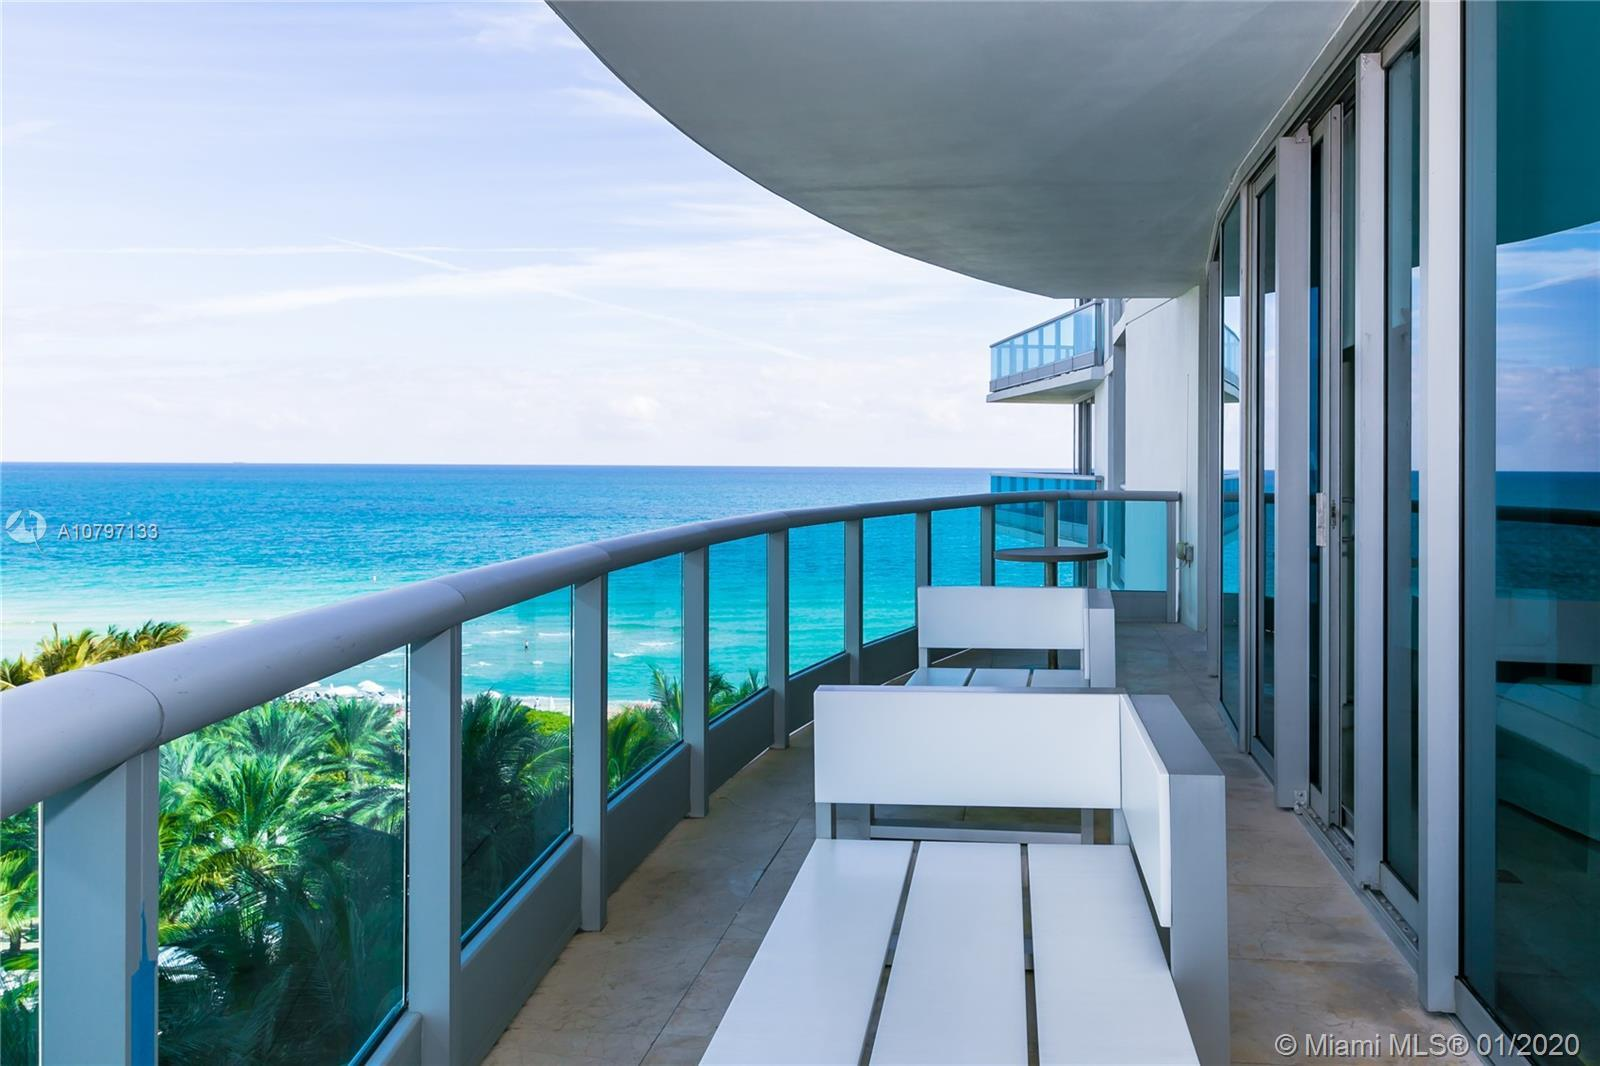 Sophisticated two bedroom + den ocean front condo located at the exclusive Azure Boutique bldg. Soug